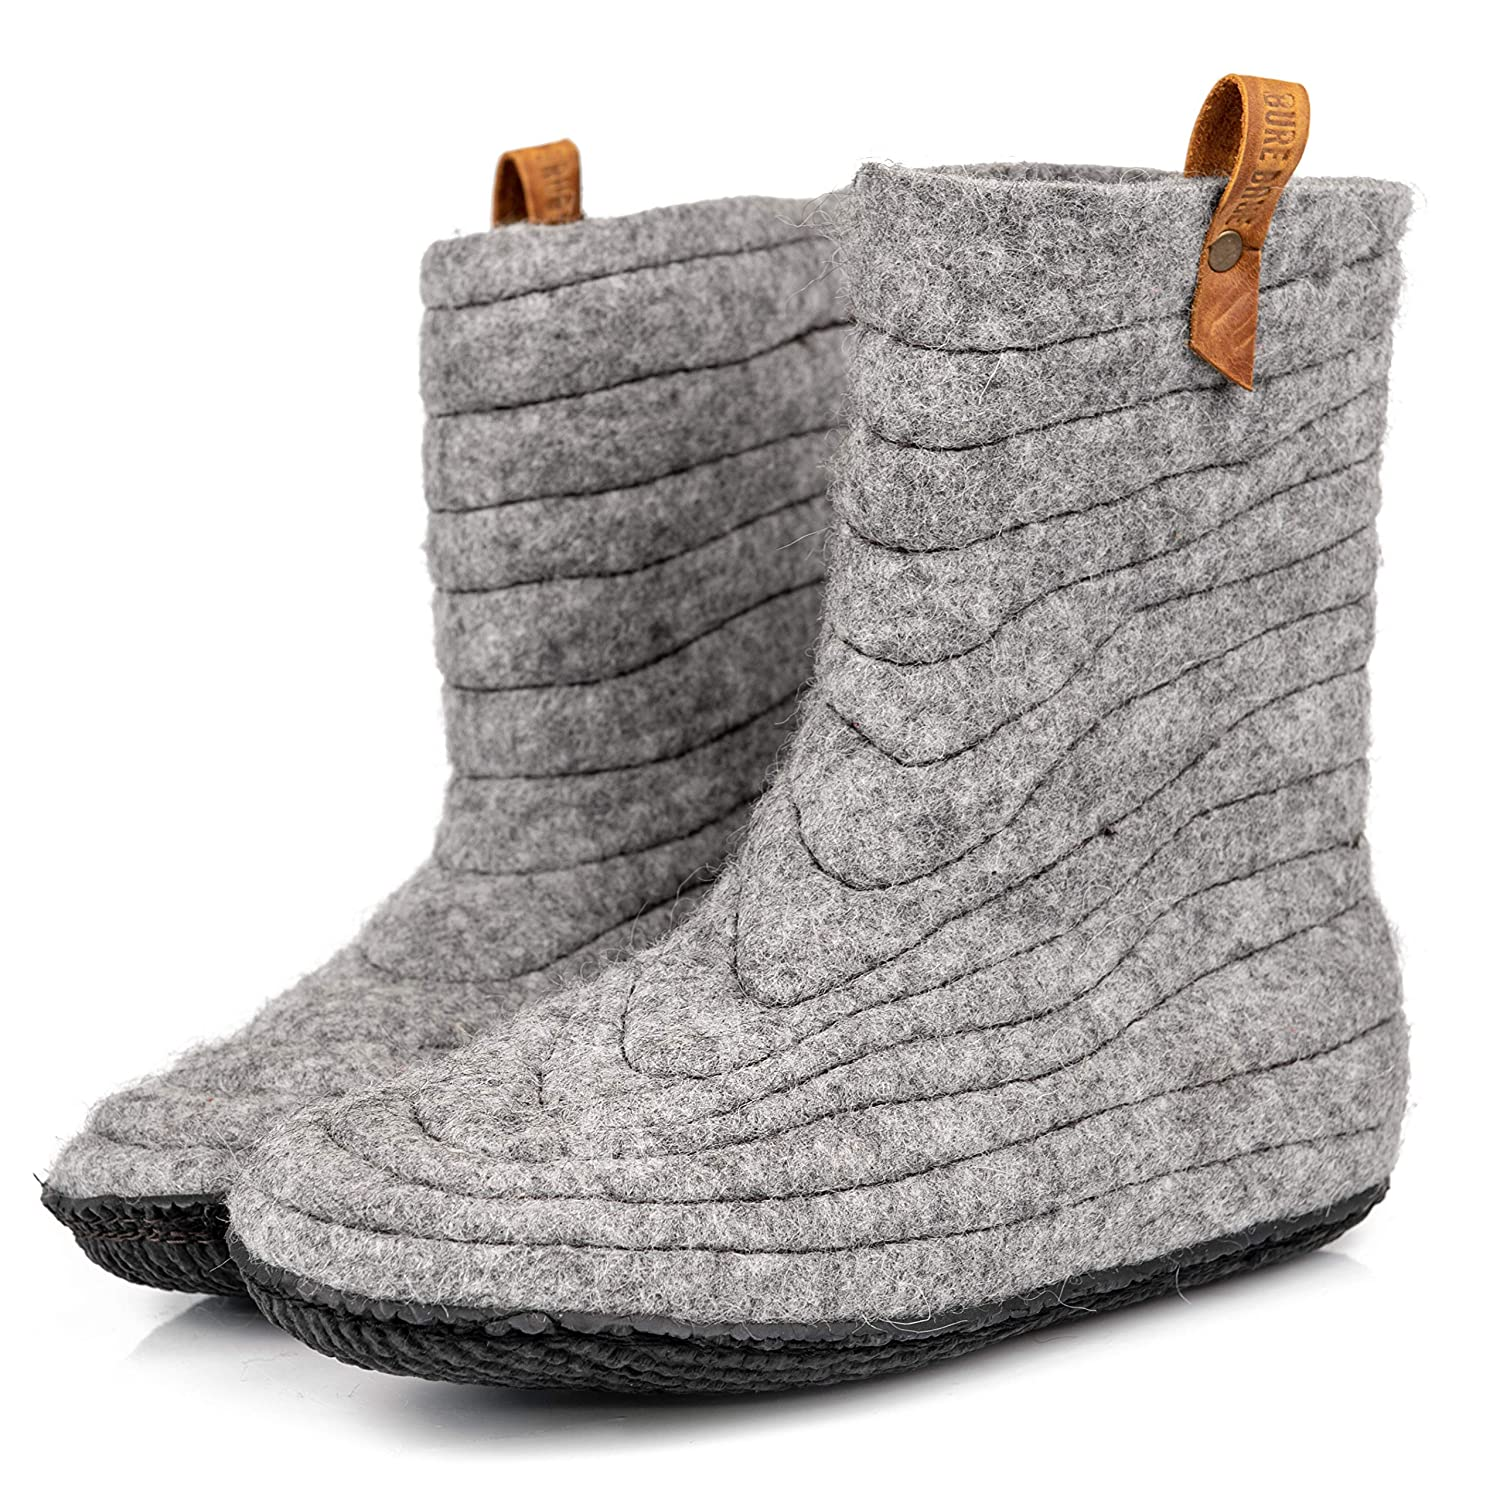 5232b1d334955 Amazon.com: BureBure Warm Wool Ankle Boots Slippers for Women Blue ...